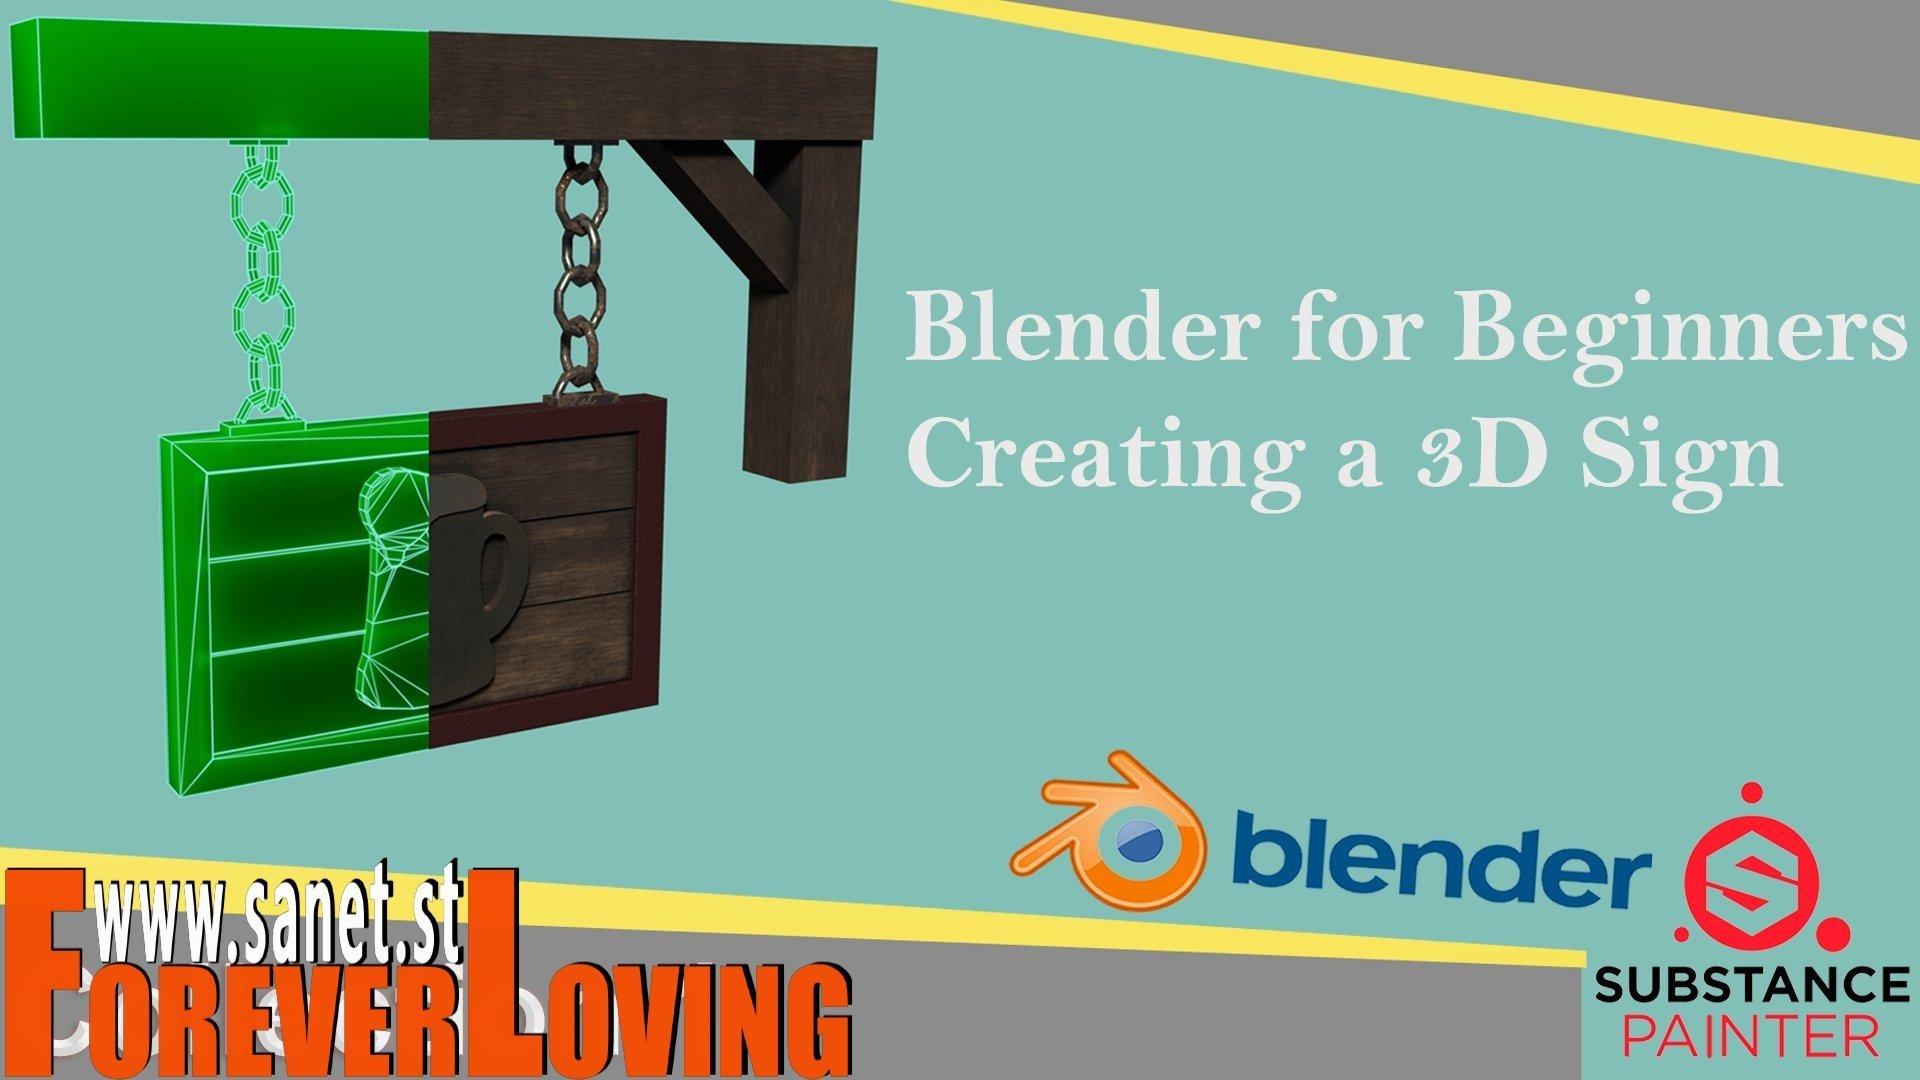 Download Blender for beginners creating a low poly 3D model